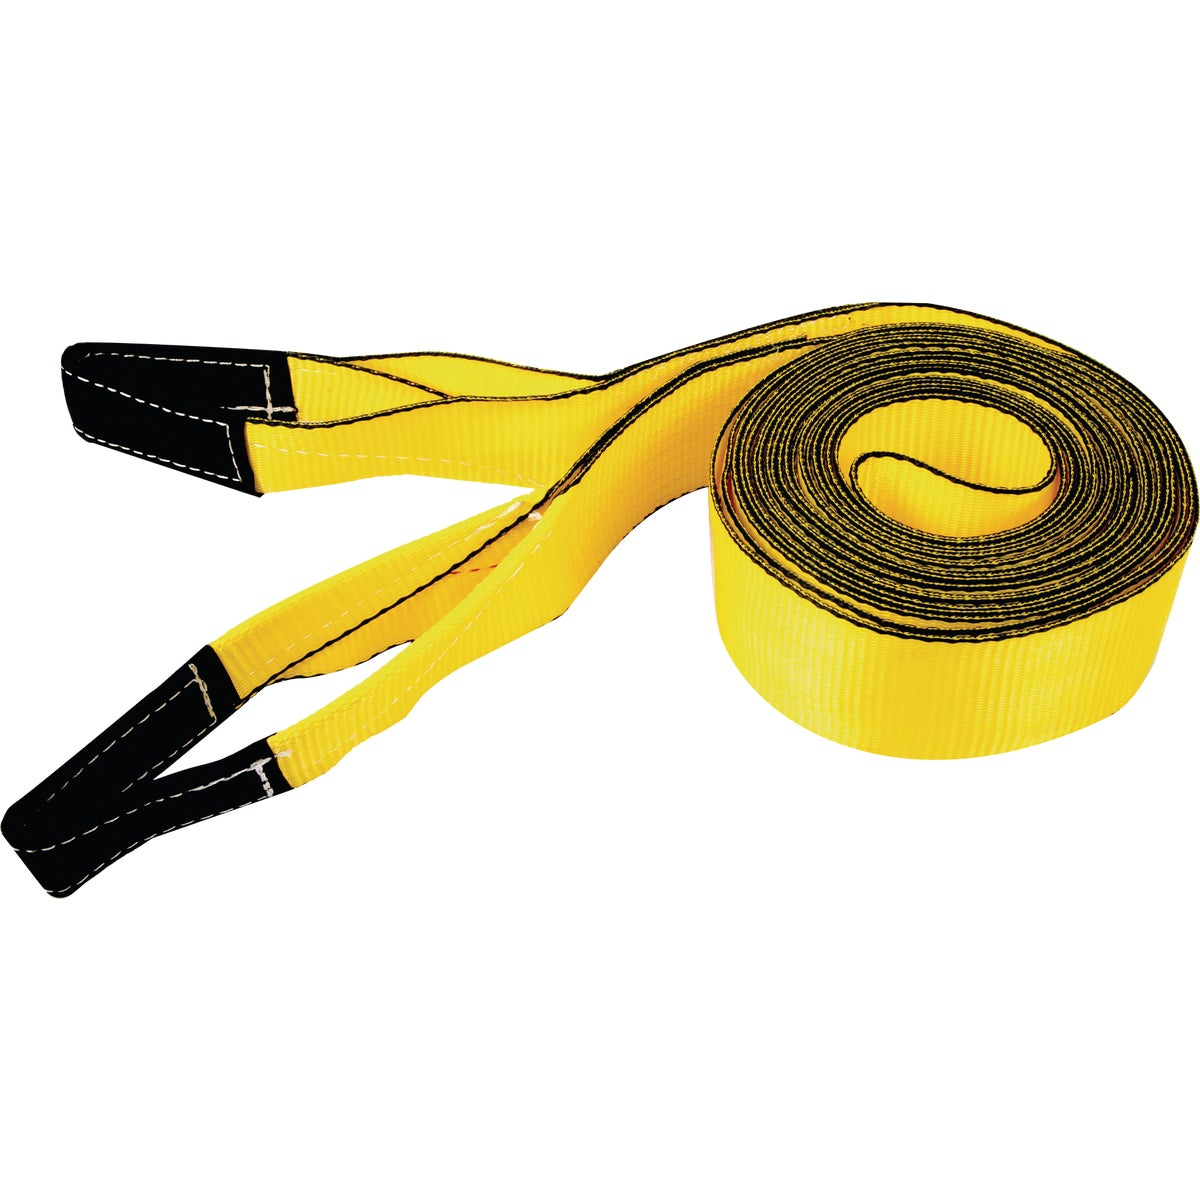 "3""X25' TOW STRAP - F13926 by Cargobuckle"